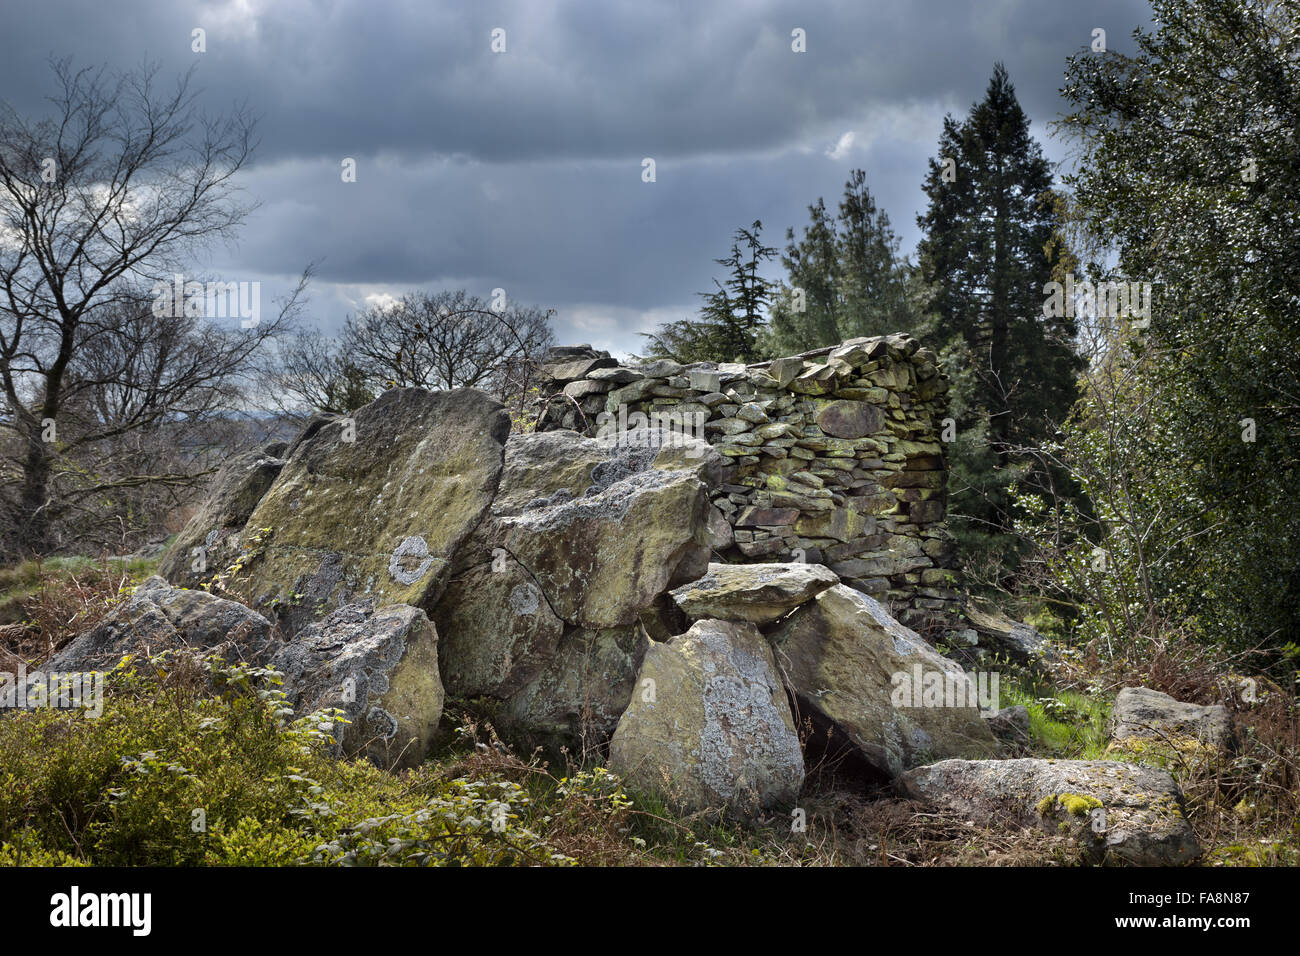 The rocky outcrop and fort at Stoneywell, Leicestershire. - Stock Image